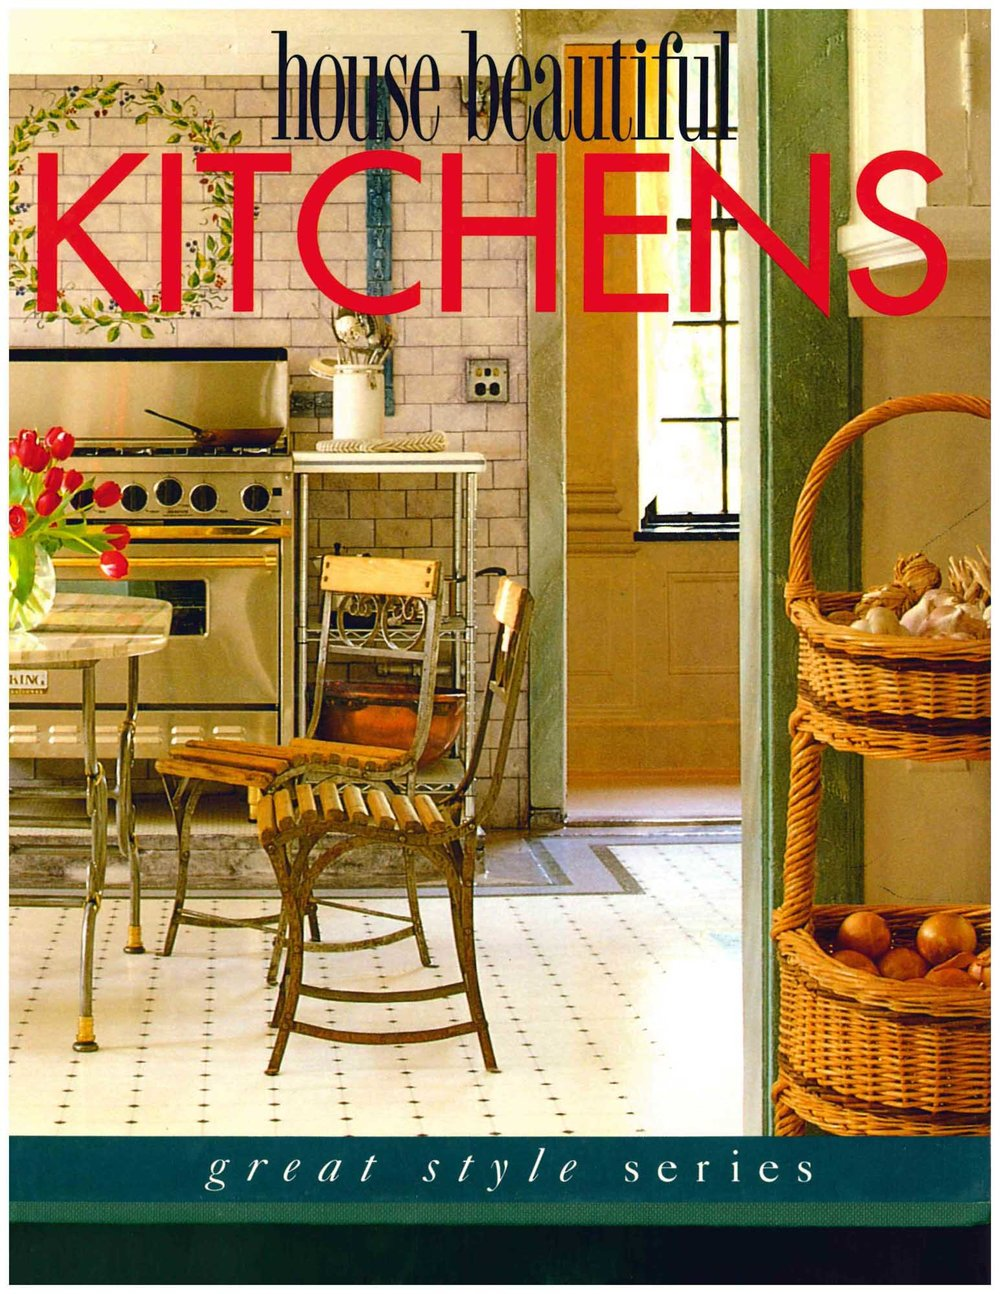 House Beautiful Kitchens_Cover-1.jpg